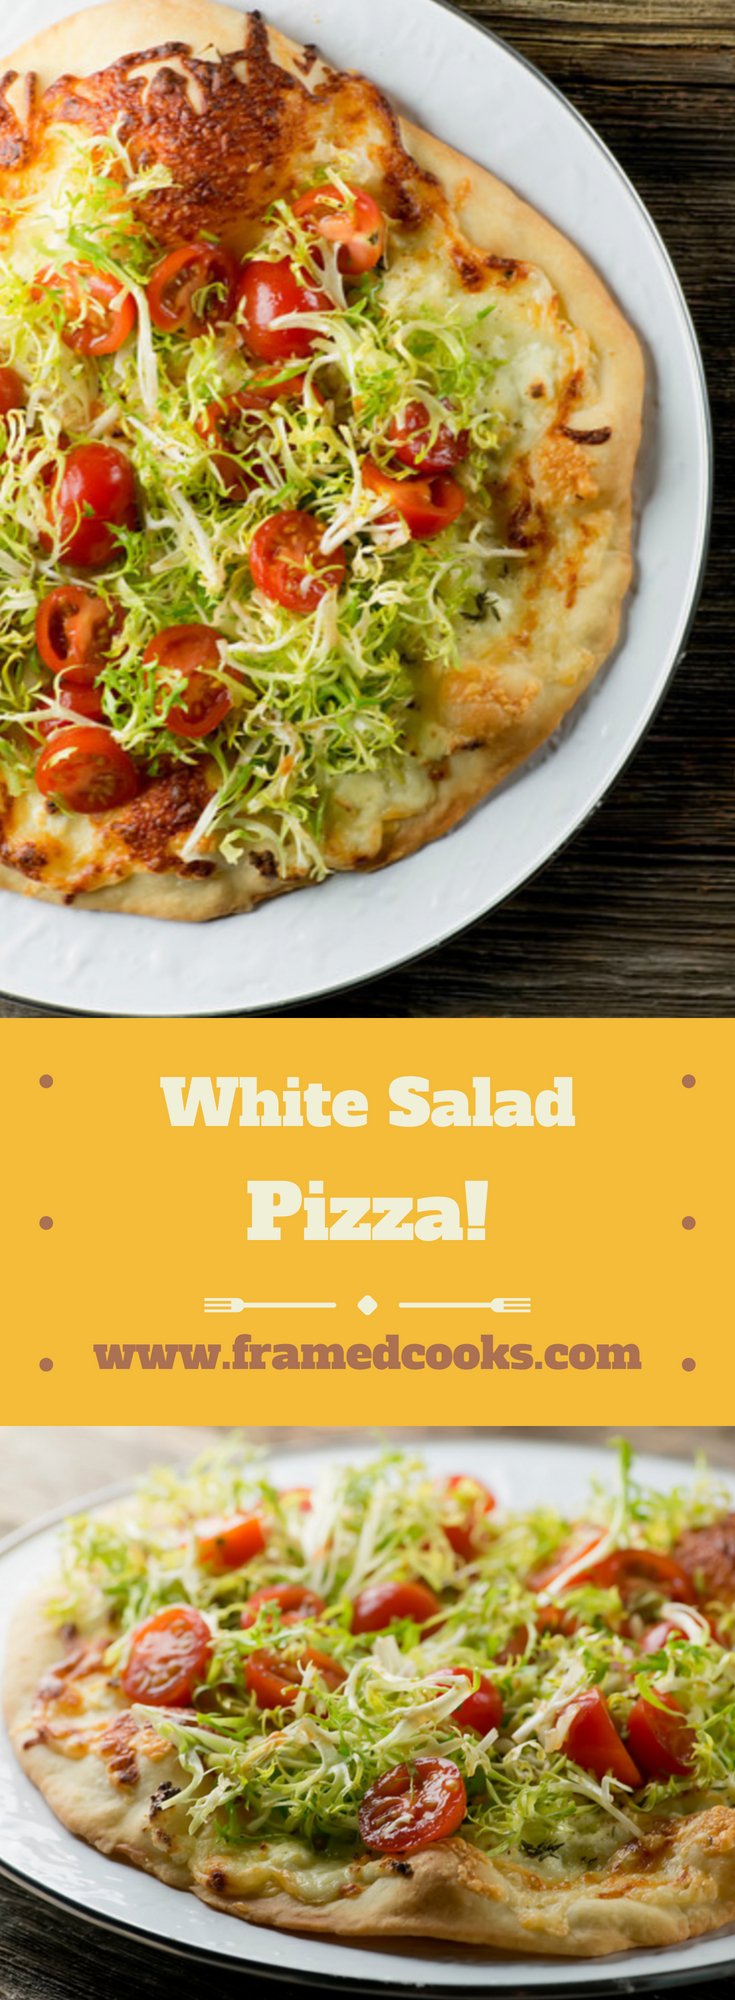 Have your pizza and your salad all in one bite with this easy recipe for white salad pizza.   It's the perfect way to have your veggies - and your pizza!